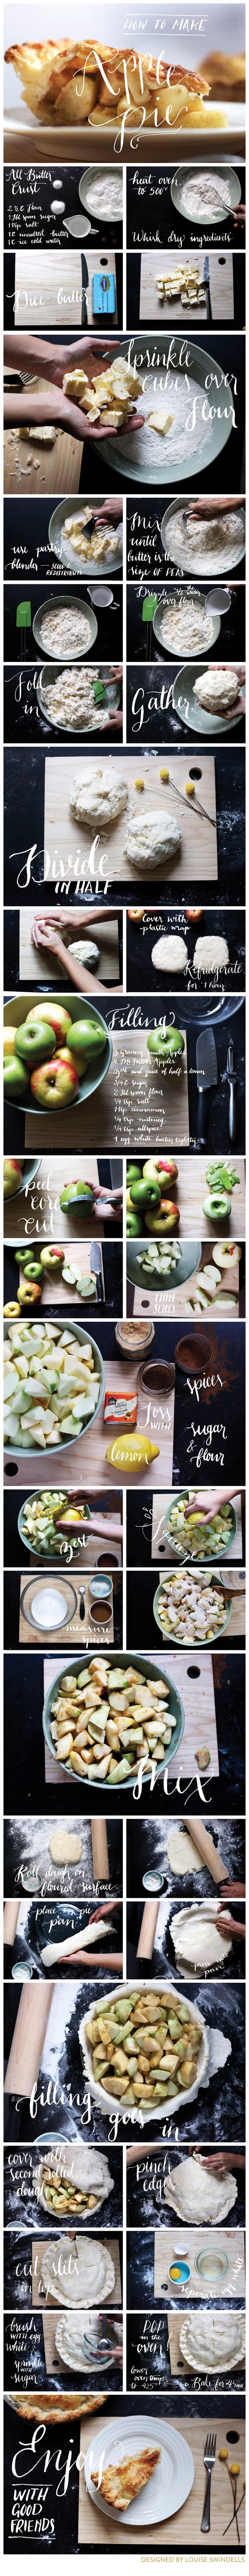 How to Make Apple Pie- An Infographic by Louise Swindells, via Behance